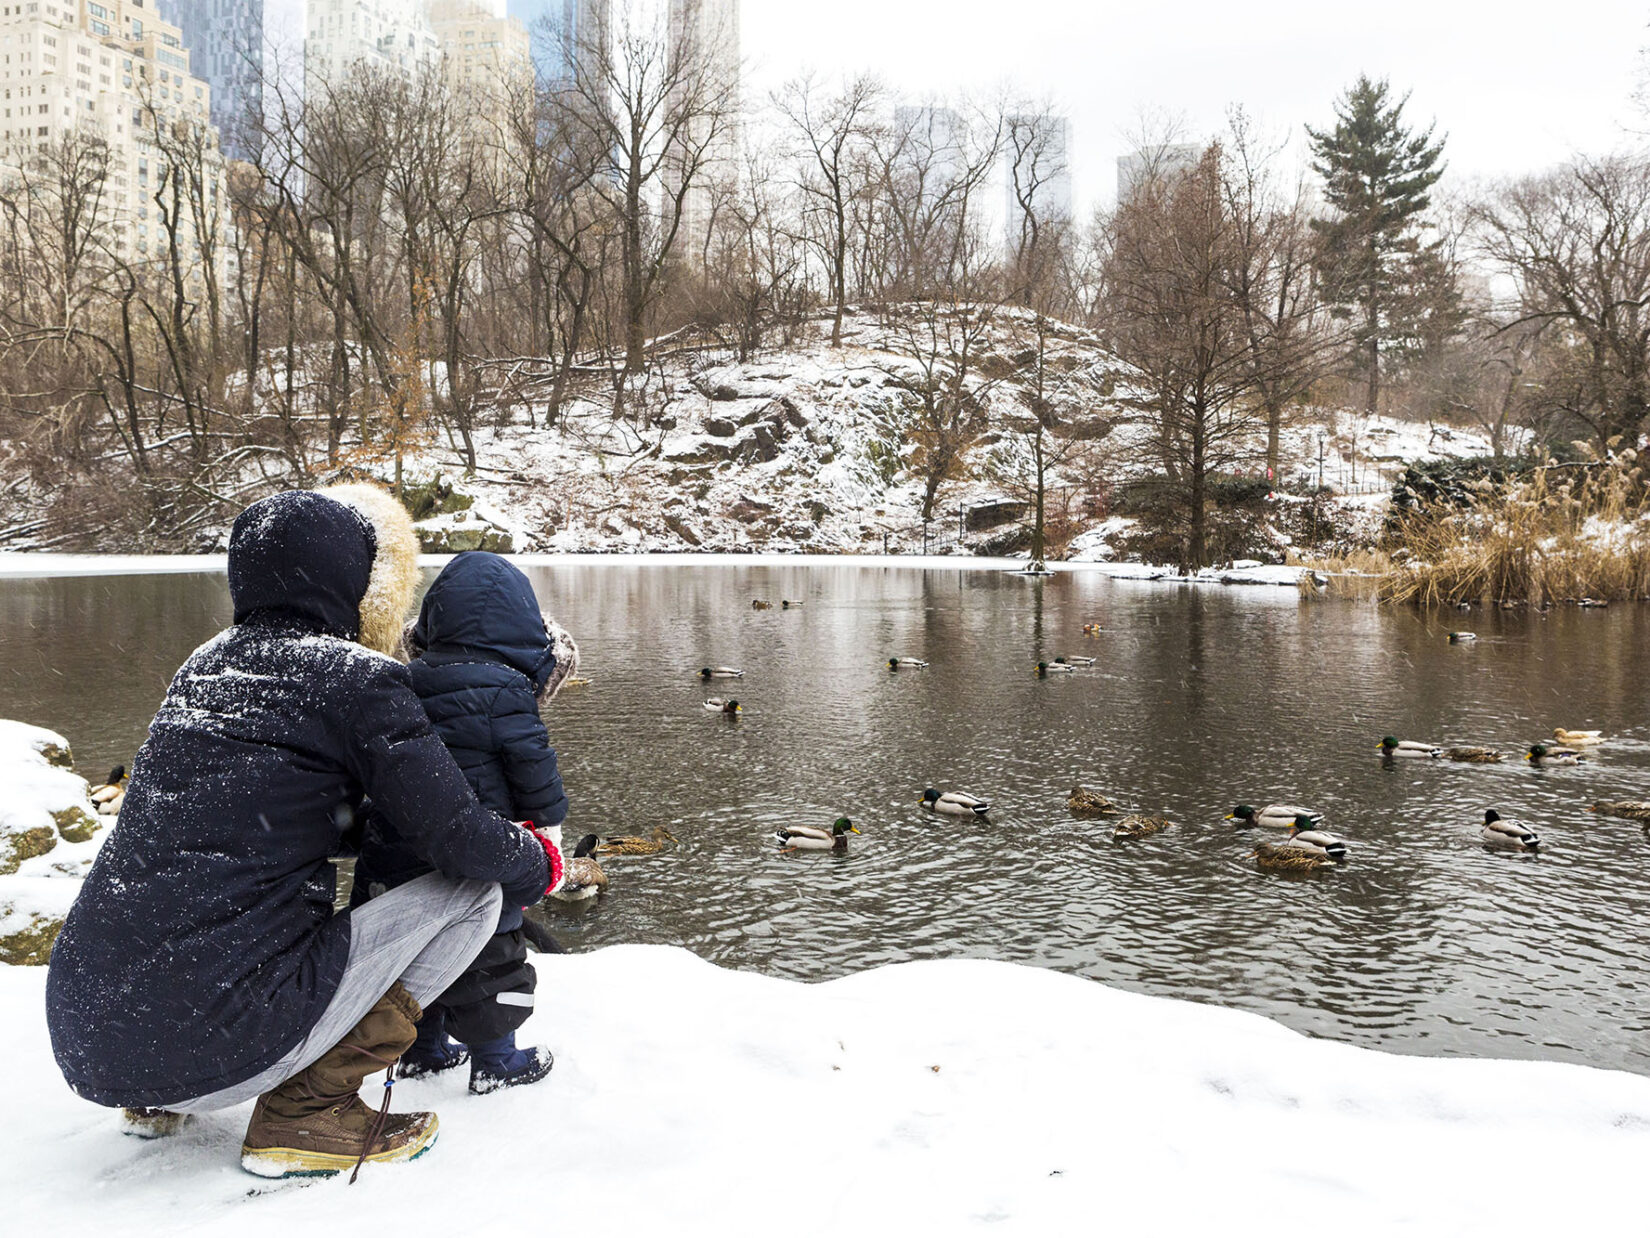 A parent and child, dressed for cold weather, on the snow-covered edge of the Pond, looking at ducks